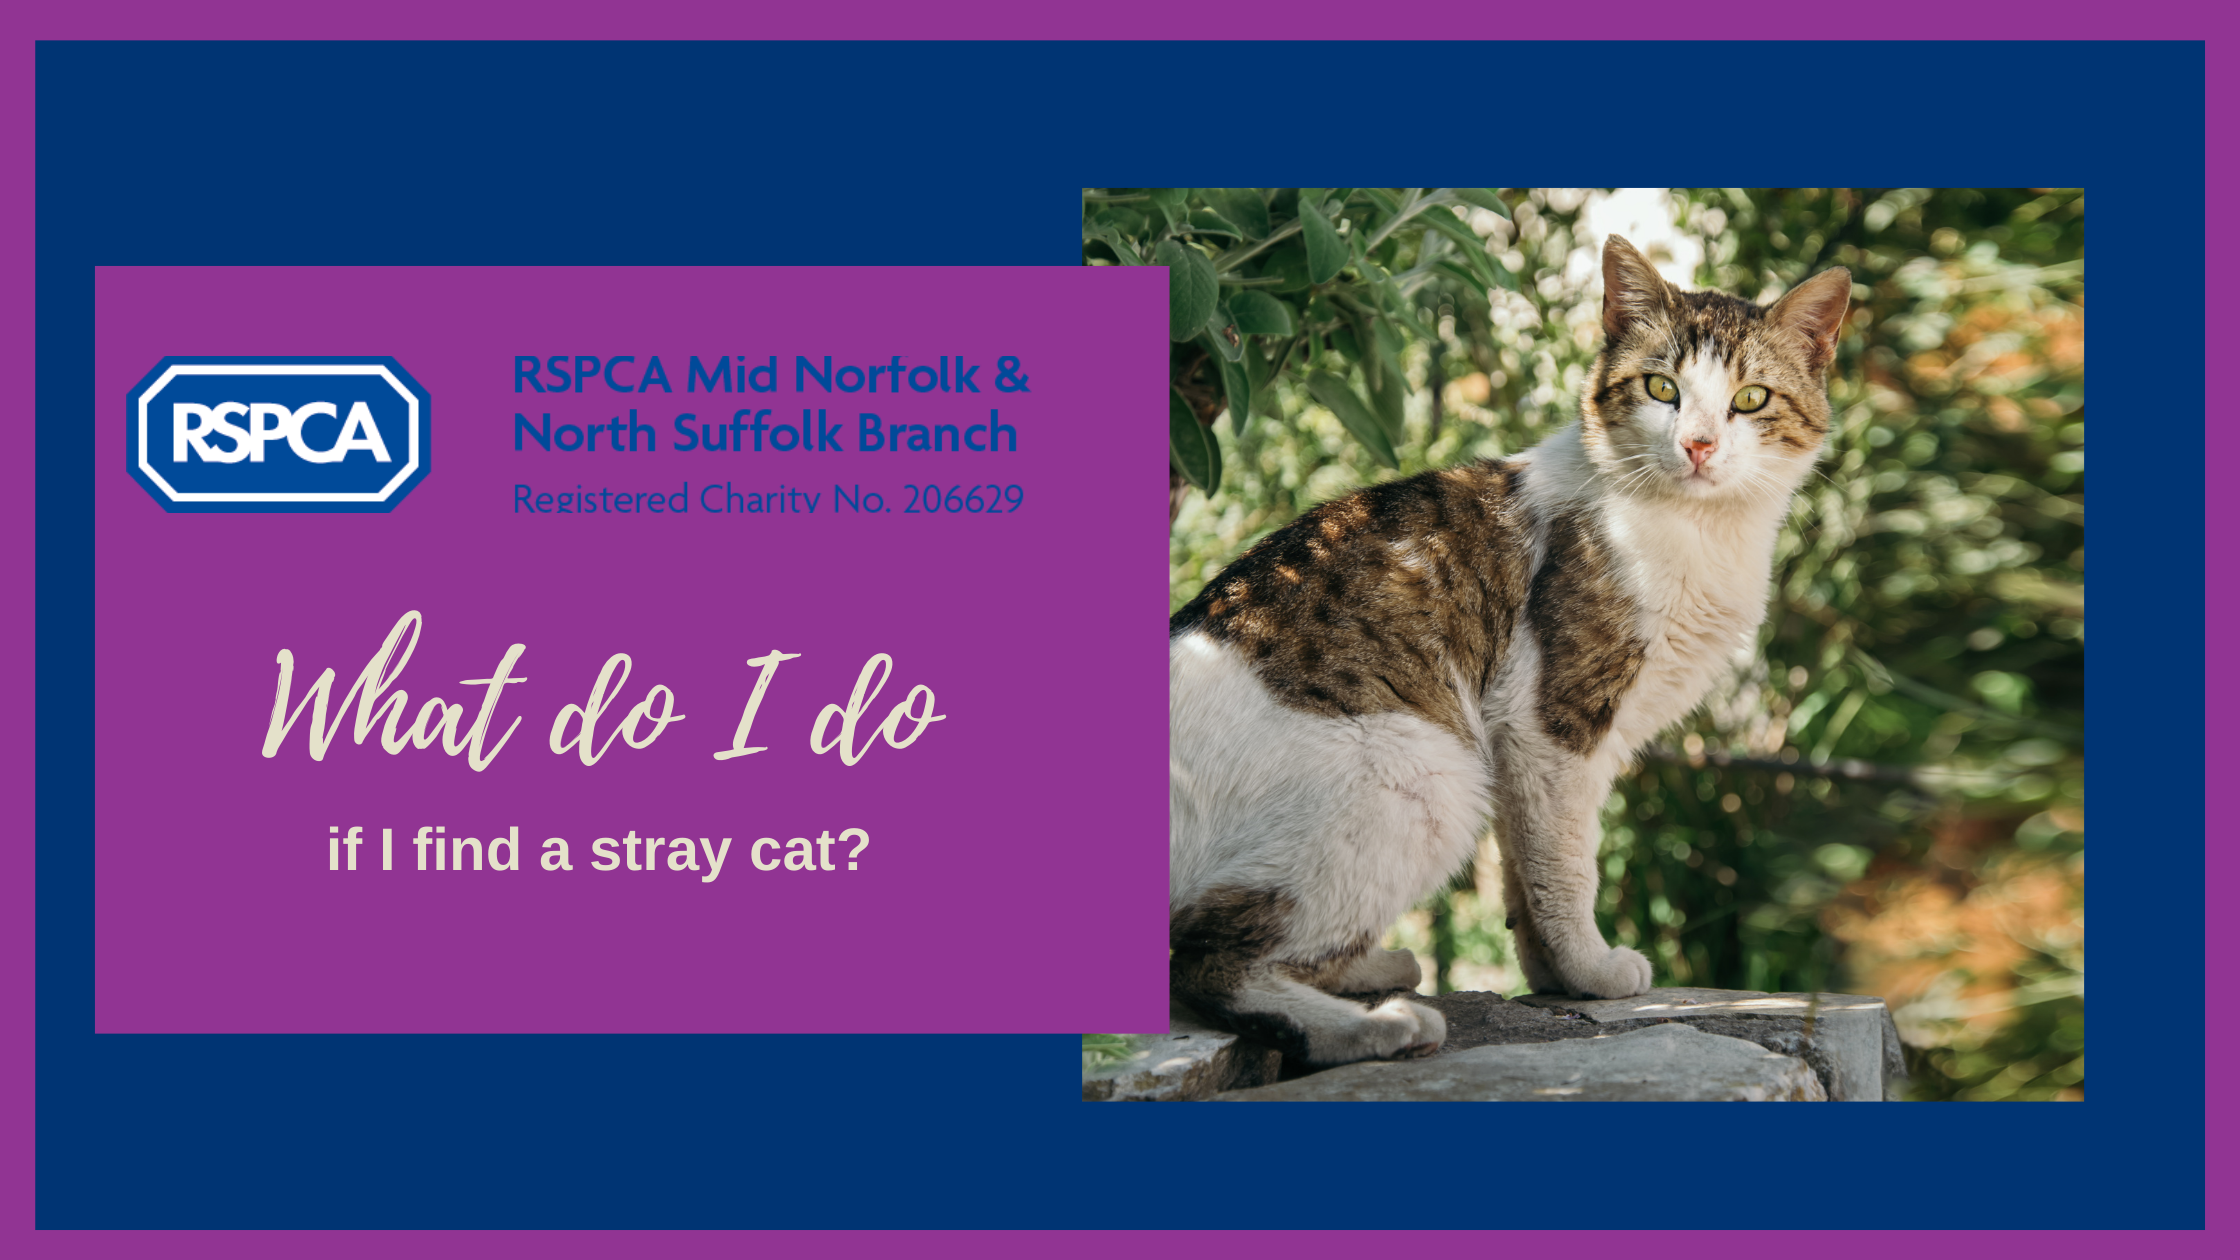 What do I do if I find a stray cat?